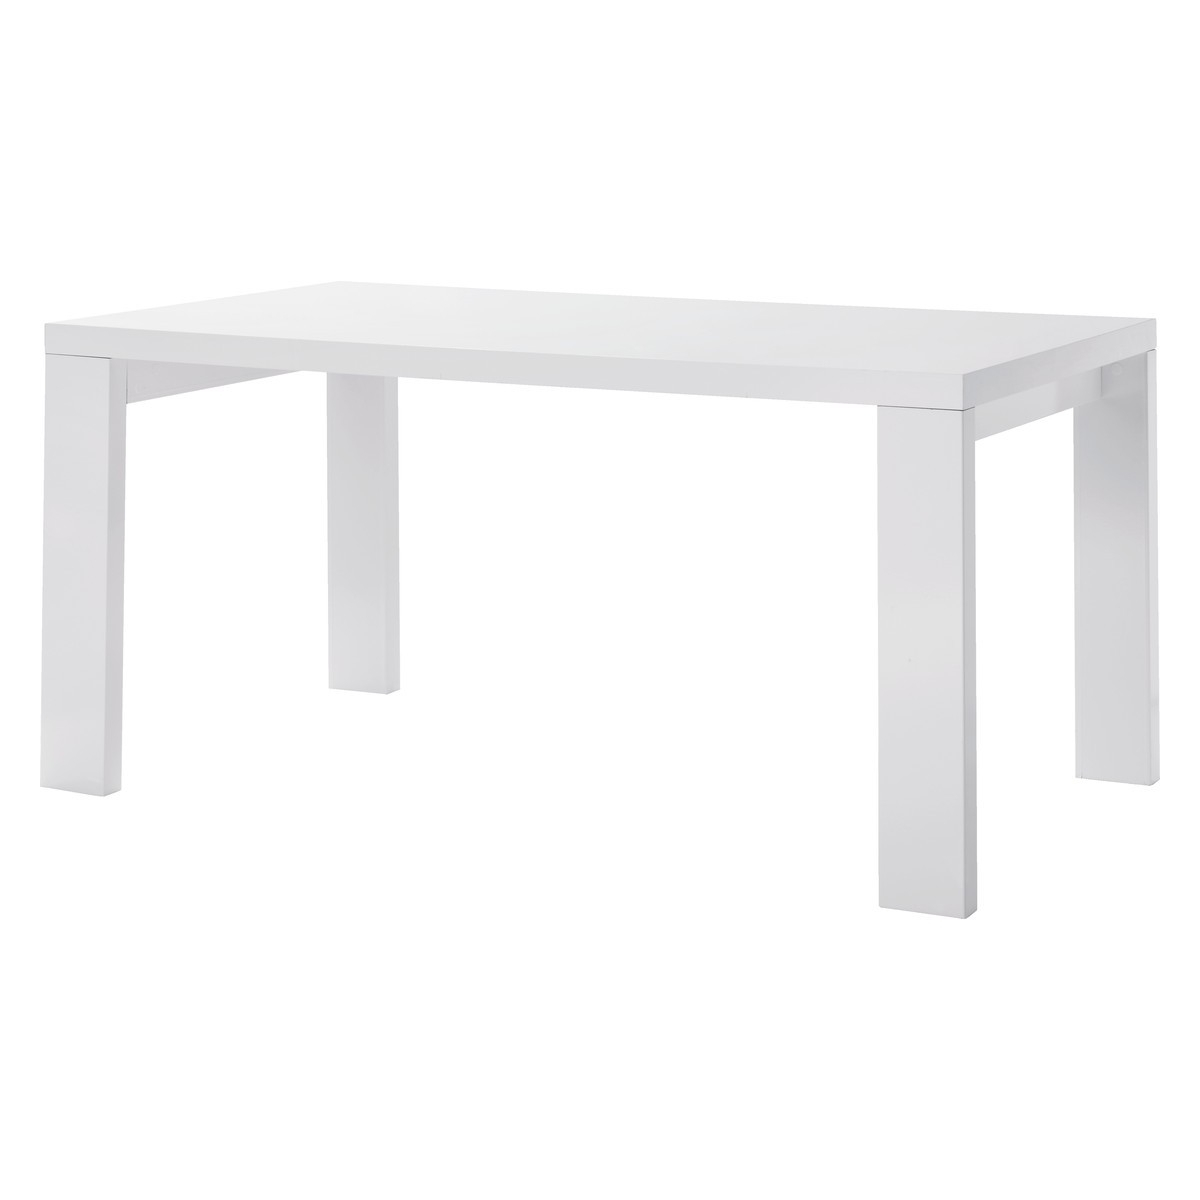 High Gloss Dining Tables Regarding Well Known Asper 6 Seat White High Gloss Dining Table (View 8 of 25)